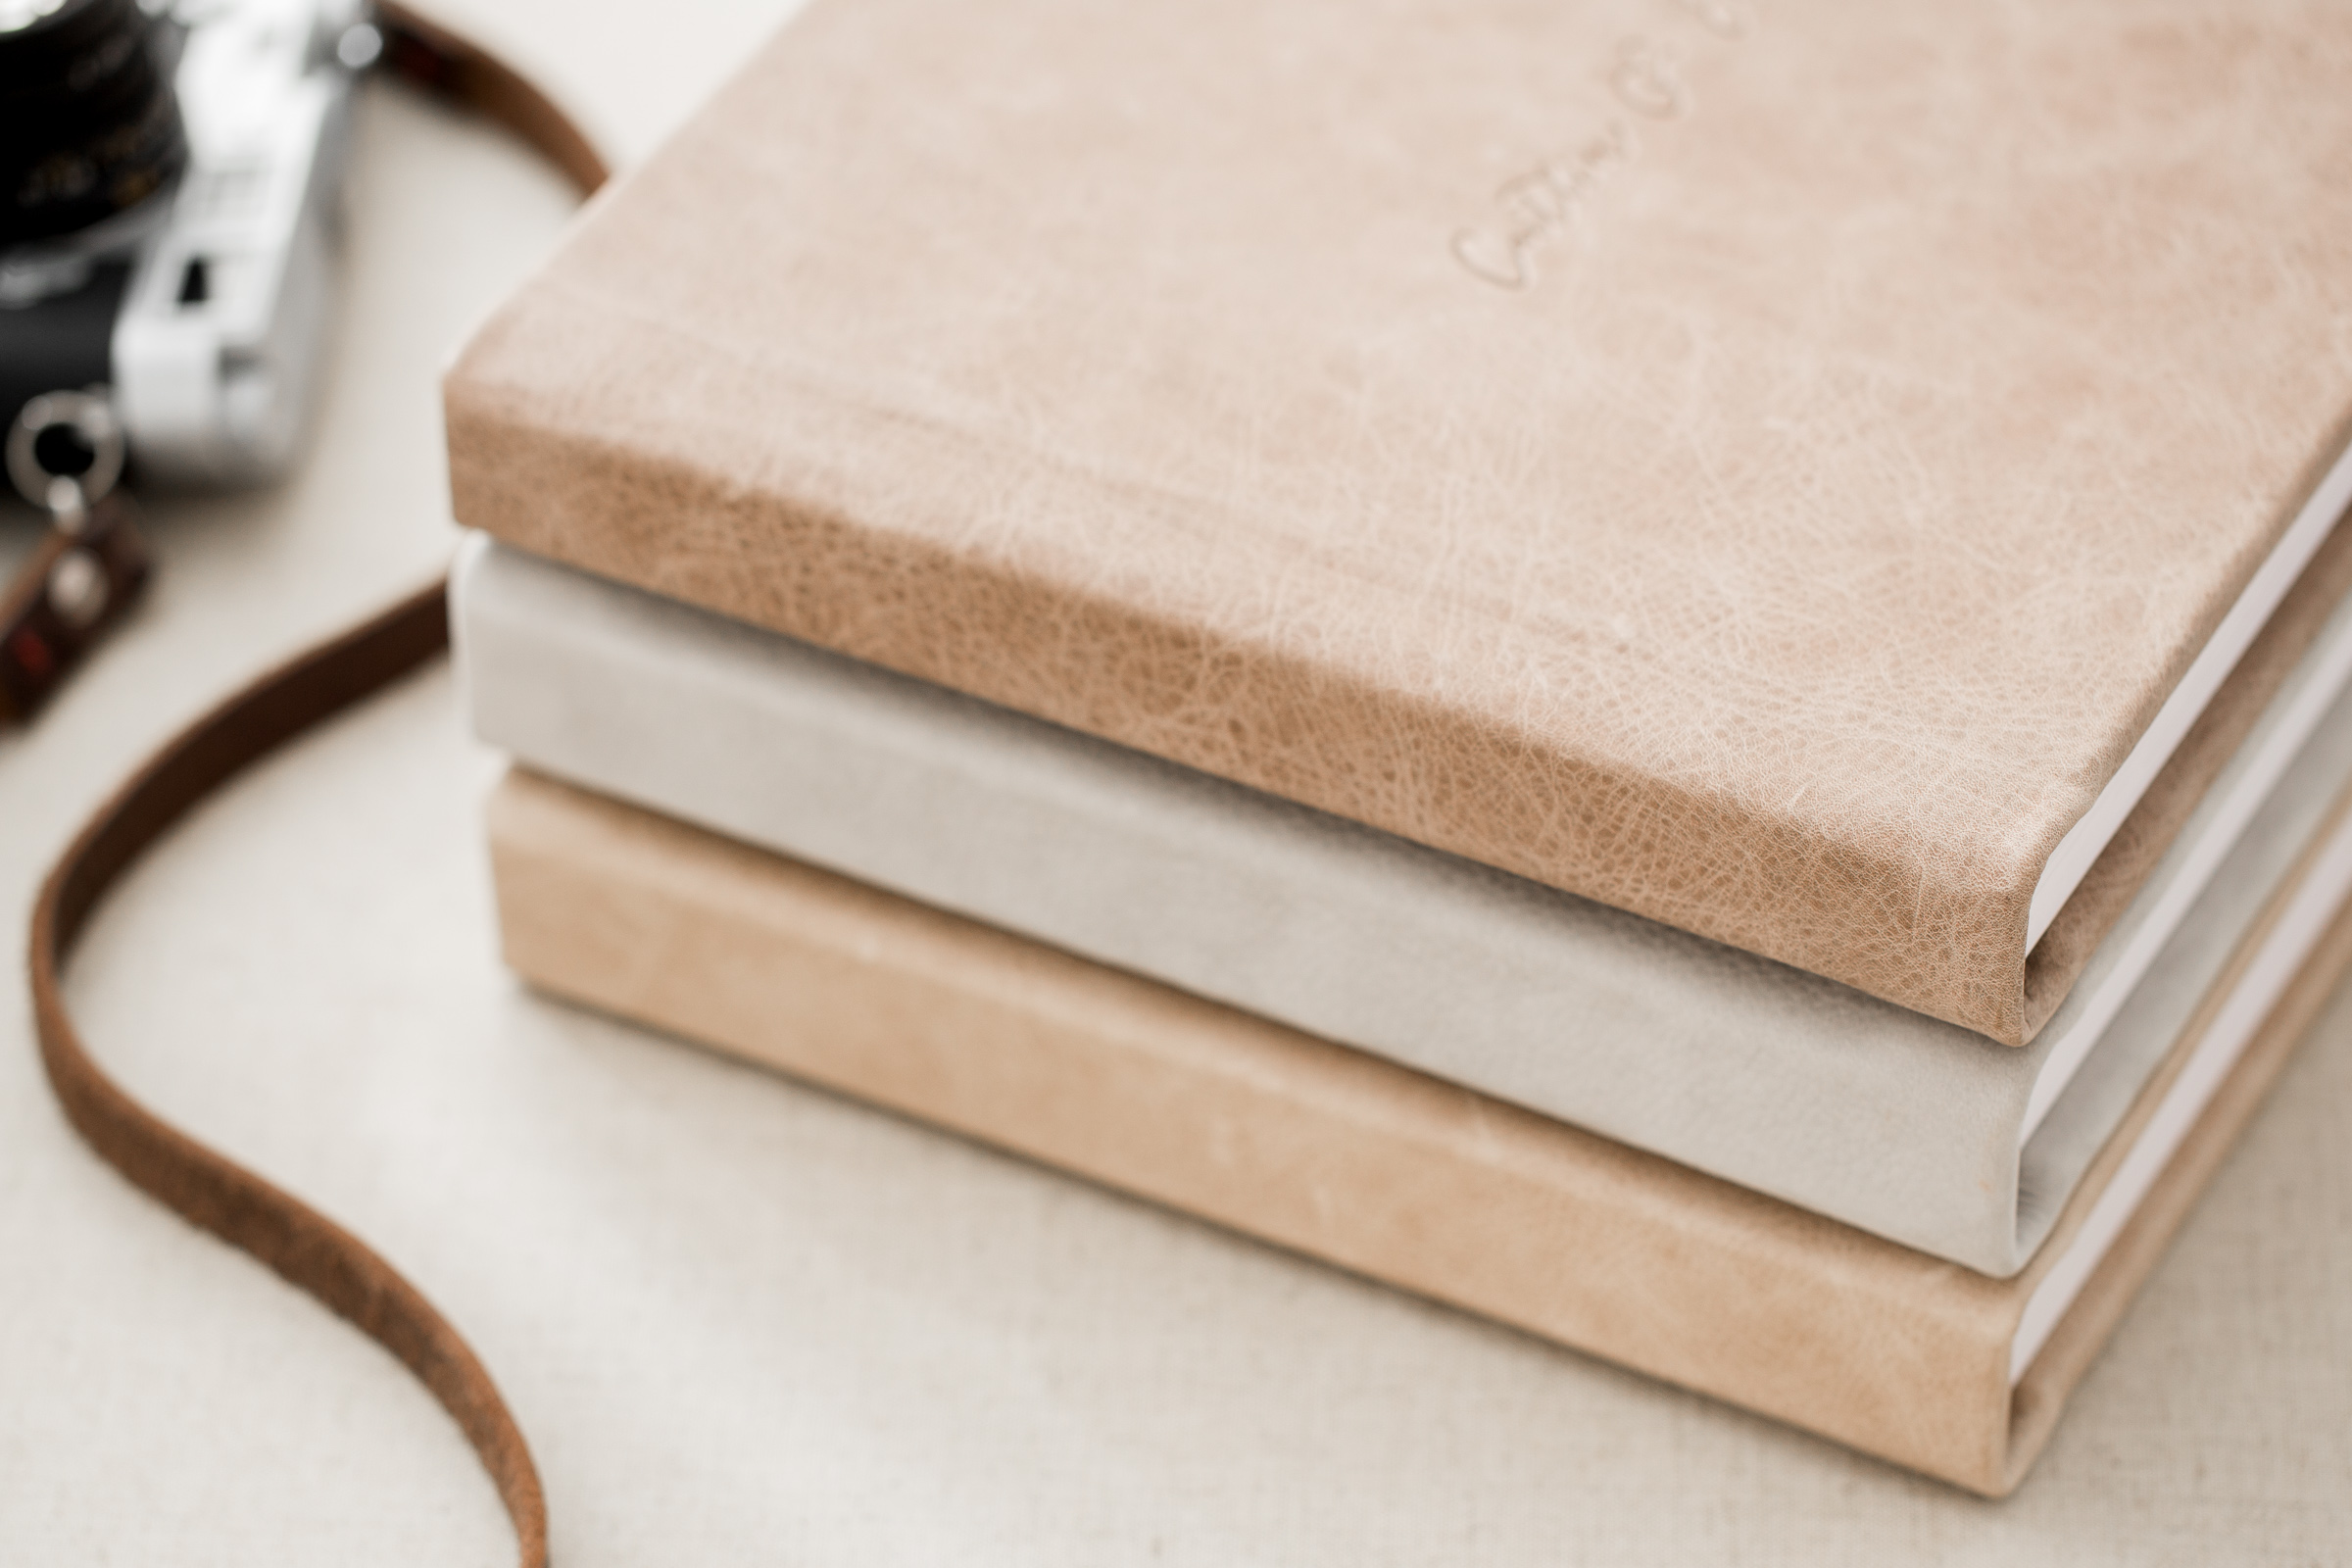 We offer over a 100 different cover options, from Luxe Linens to Distressed Leathers.